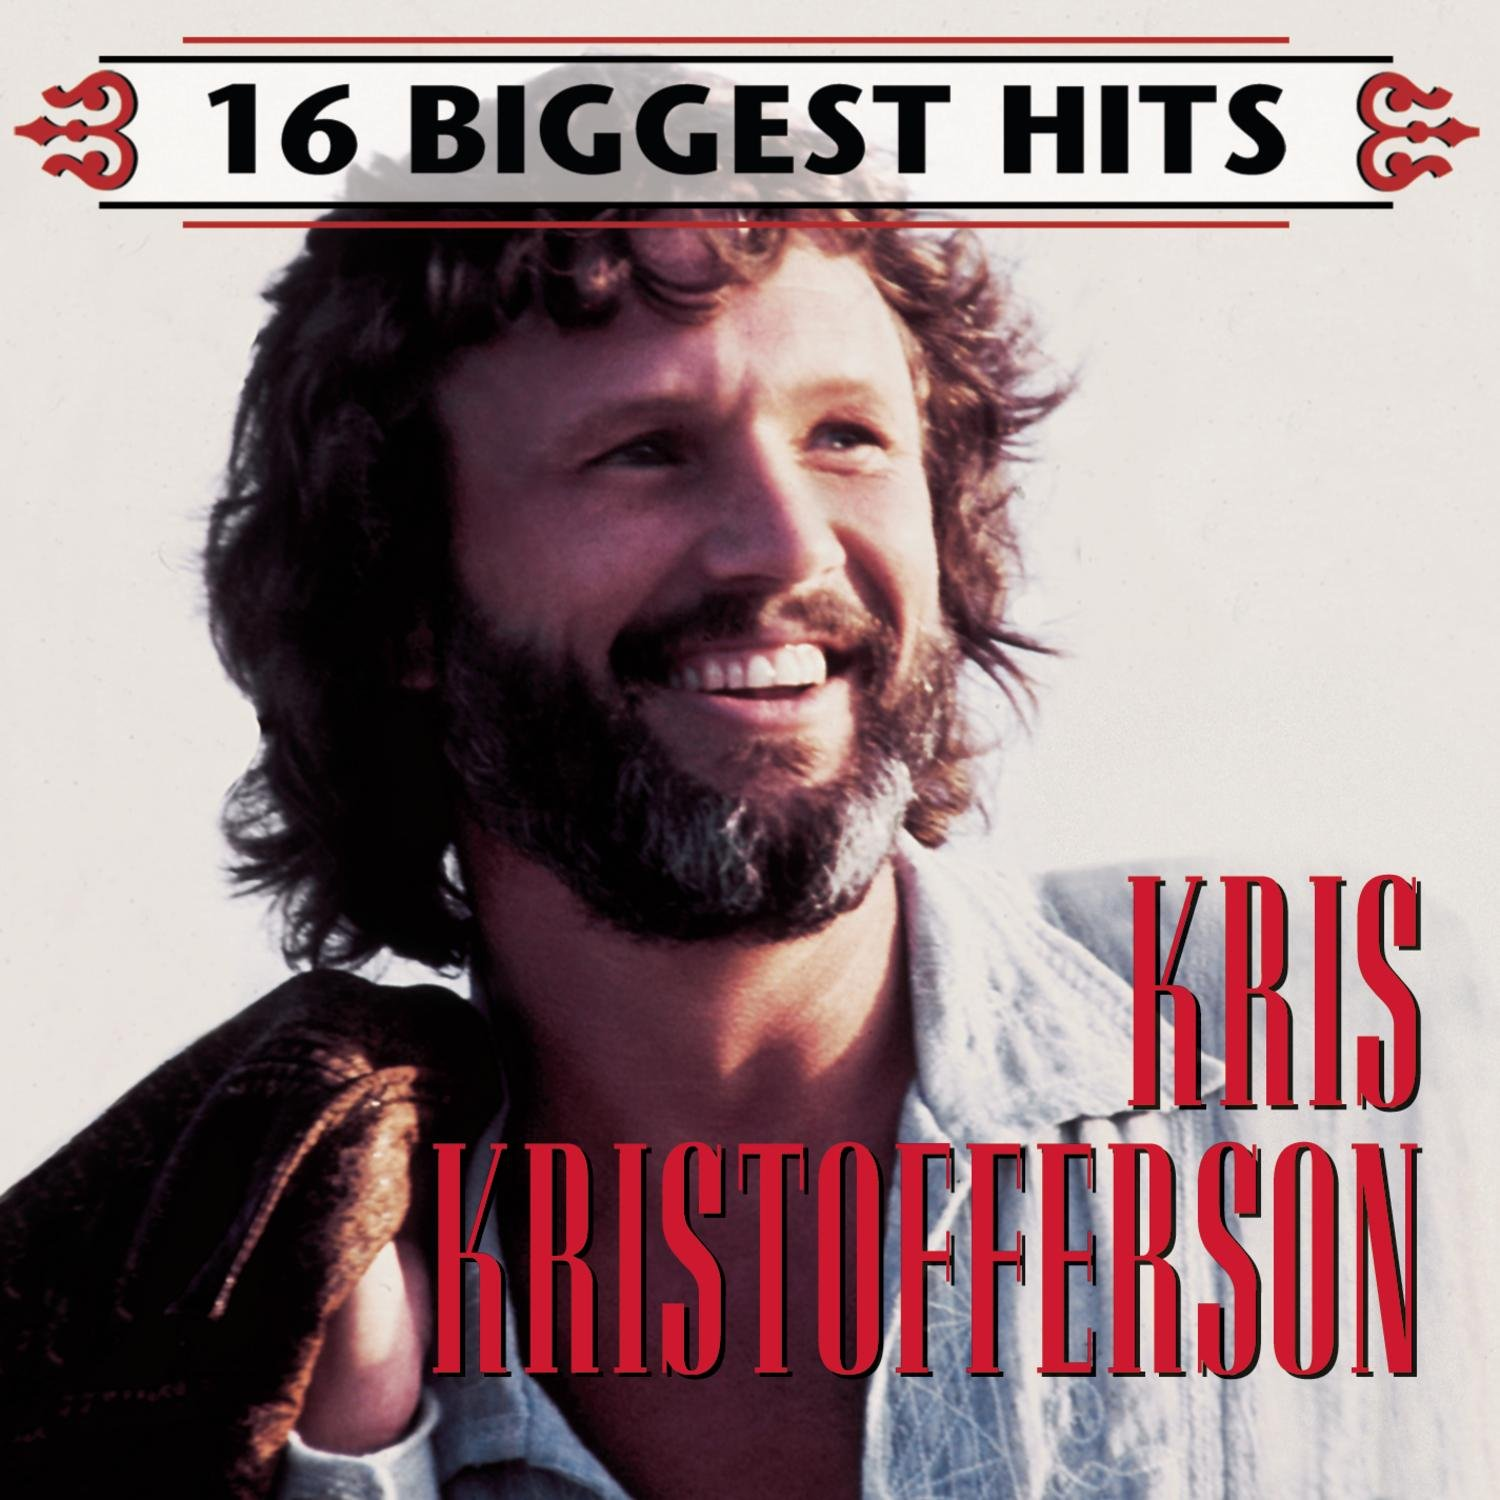 16 Biggest Hits-Kris Kristofferson